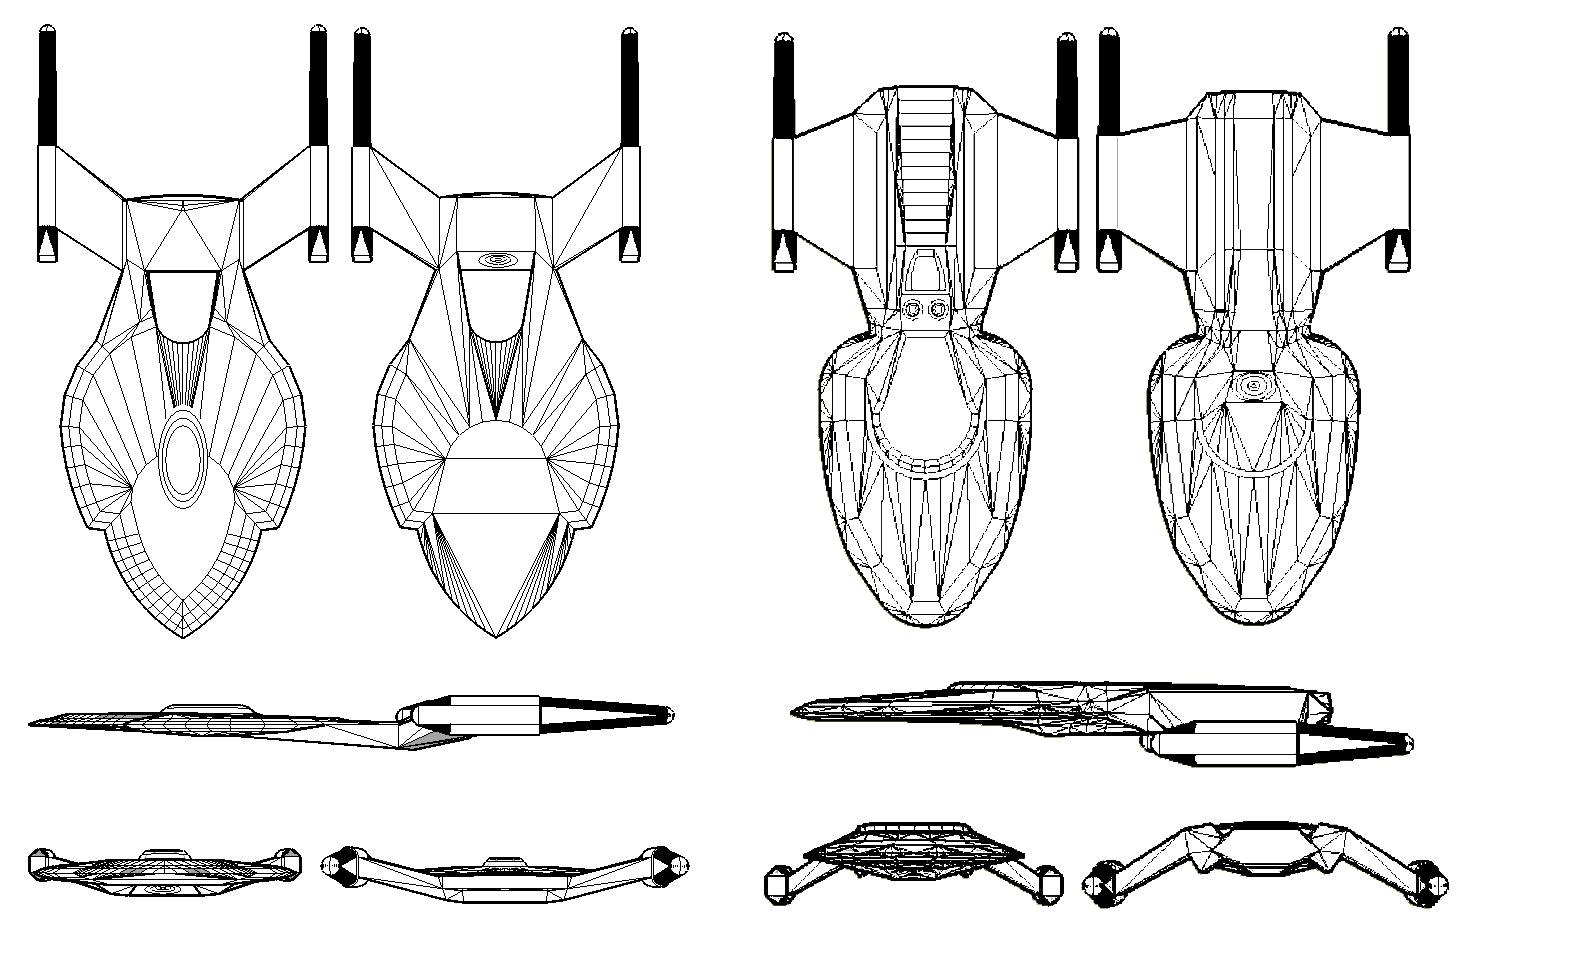 star trek ship coloring pages - star trek fanon ship ideas by ovni the ufo on deviantart